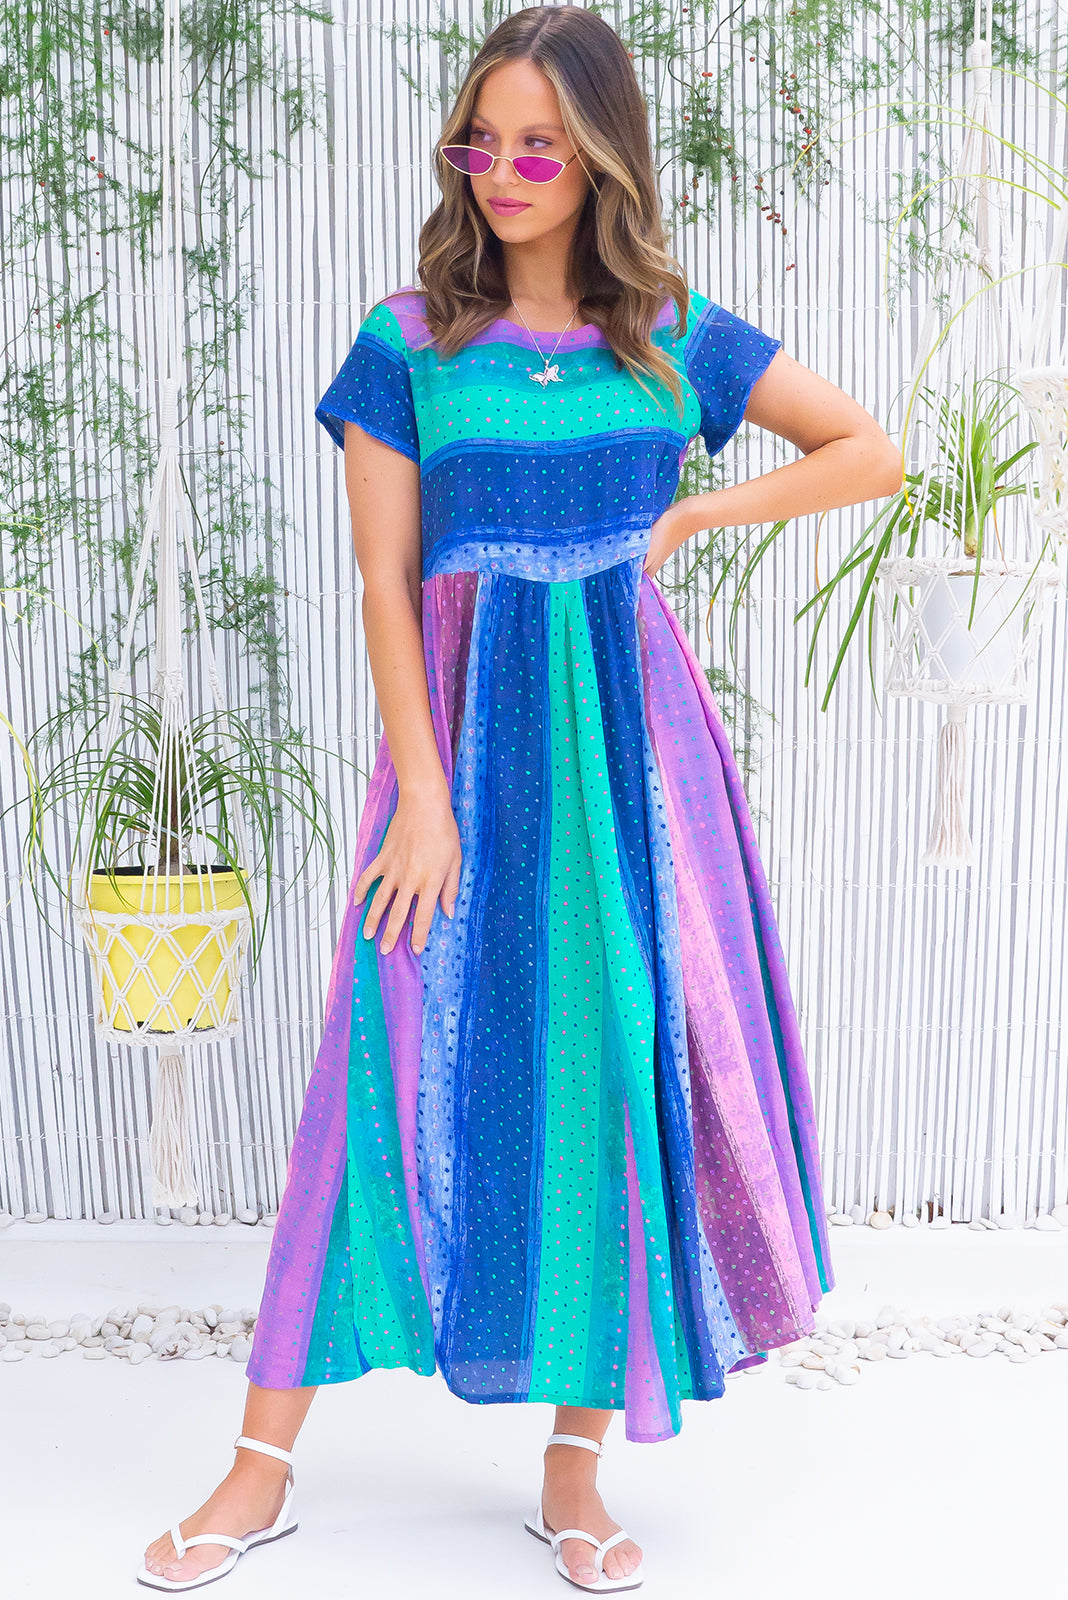 The Cocoloco Glacier Blues Midi Dress features fabric is slightly sheer when against the light, short sleeves, side pockets and 100% cotton in soft blue and purple toned tie dye style stripes.